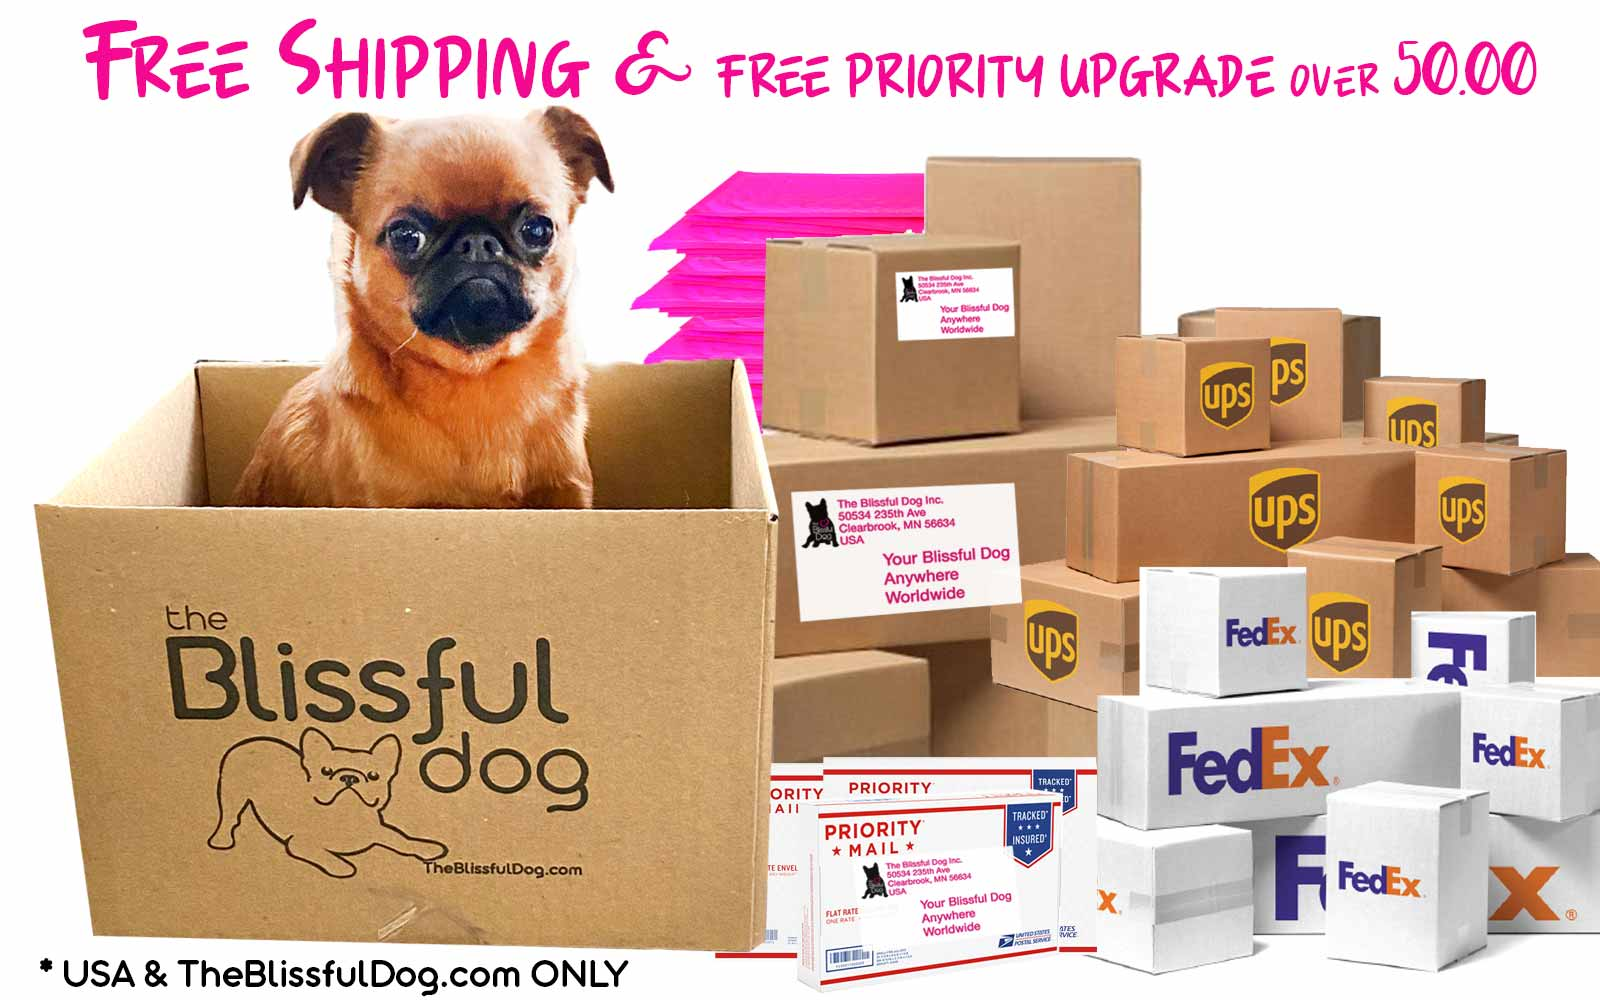 the-blissful-dog-shipping